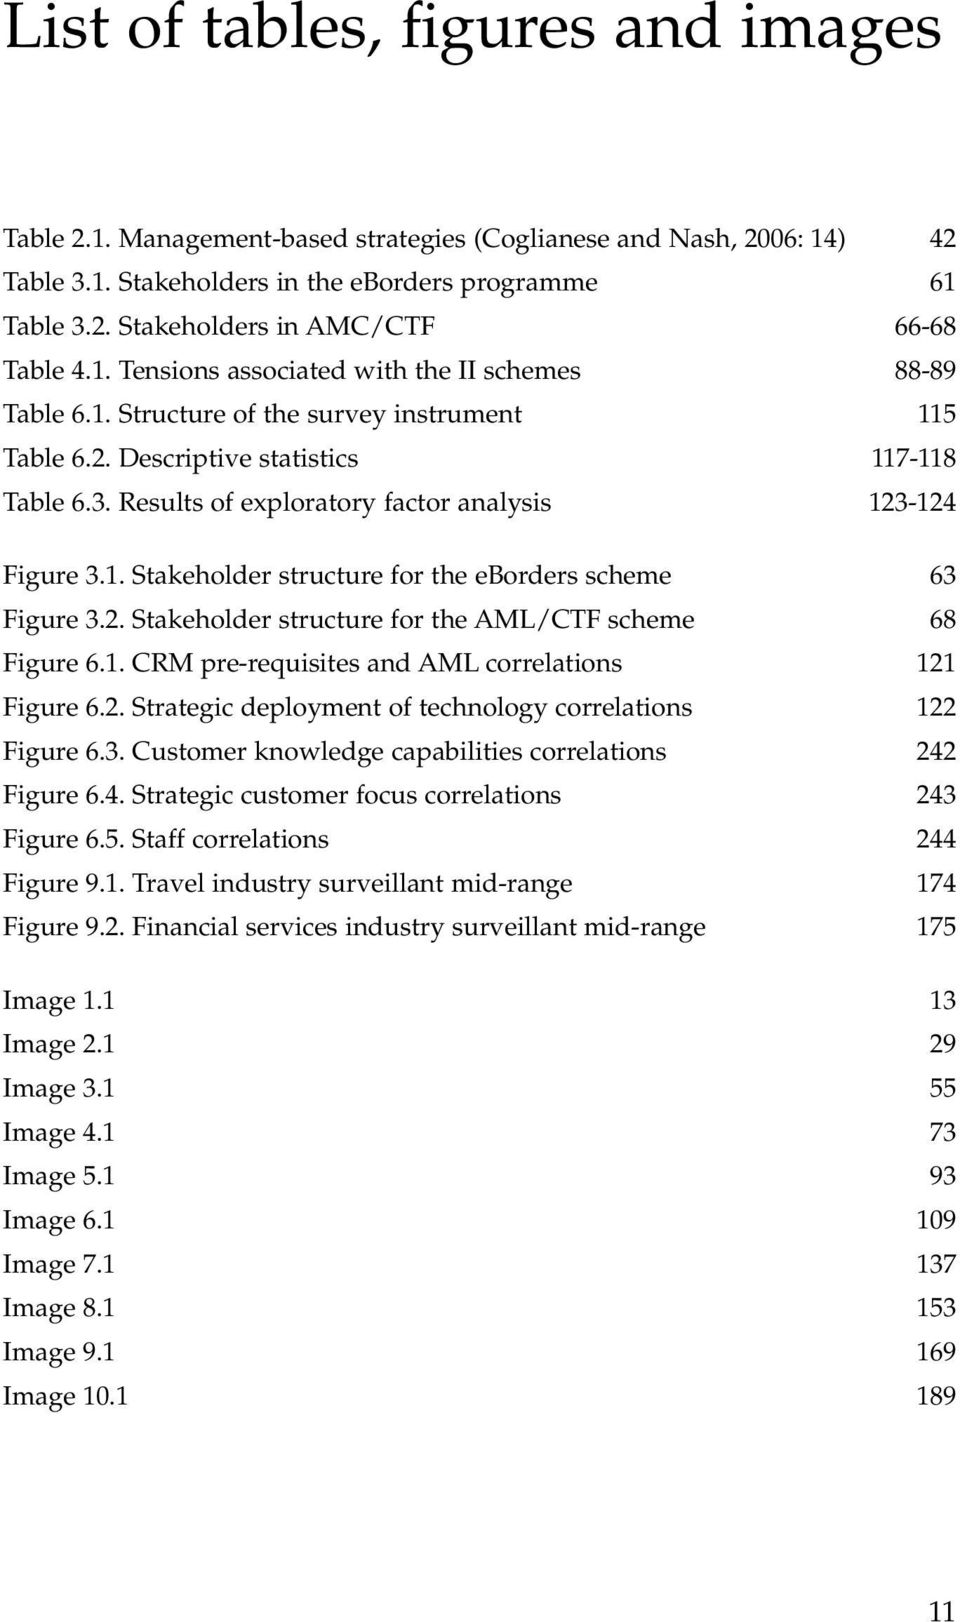 Results of exploratory factor analysis 123-124 Figure 3.1. Stakeholder structure for the eborders scheme 63 Figure 3.2. Stakeholder structure for the AML/CTF scheme 68 Figure 6.1. CRM pre-requisites and AML correlations 121 Figure 6.